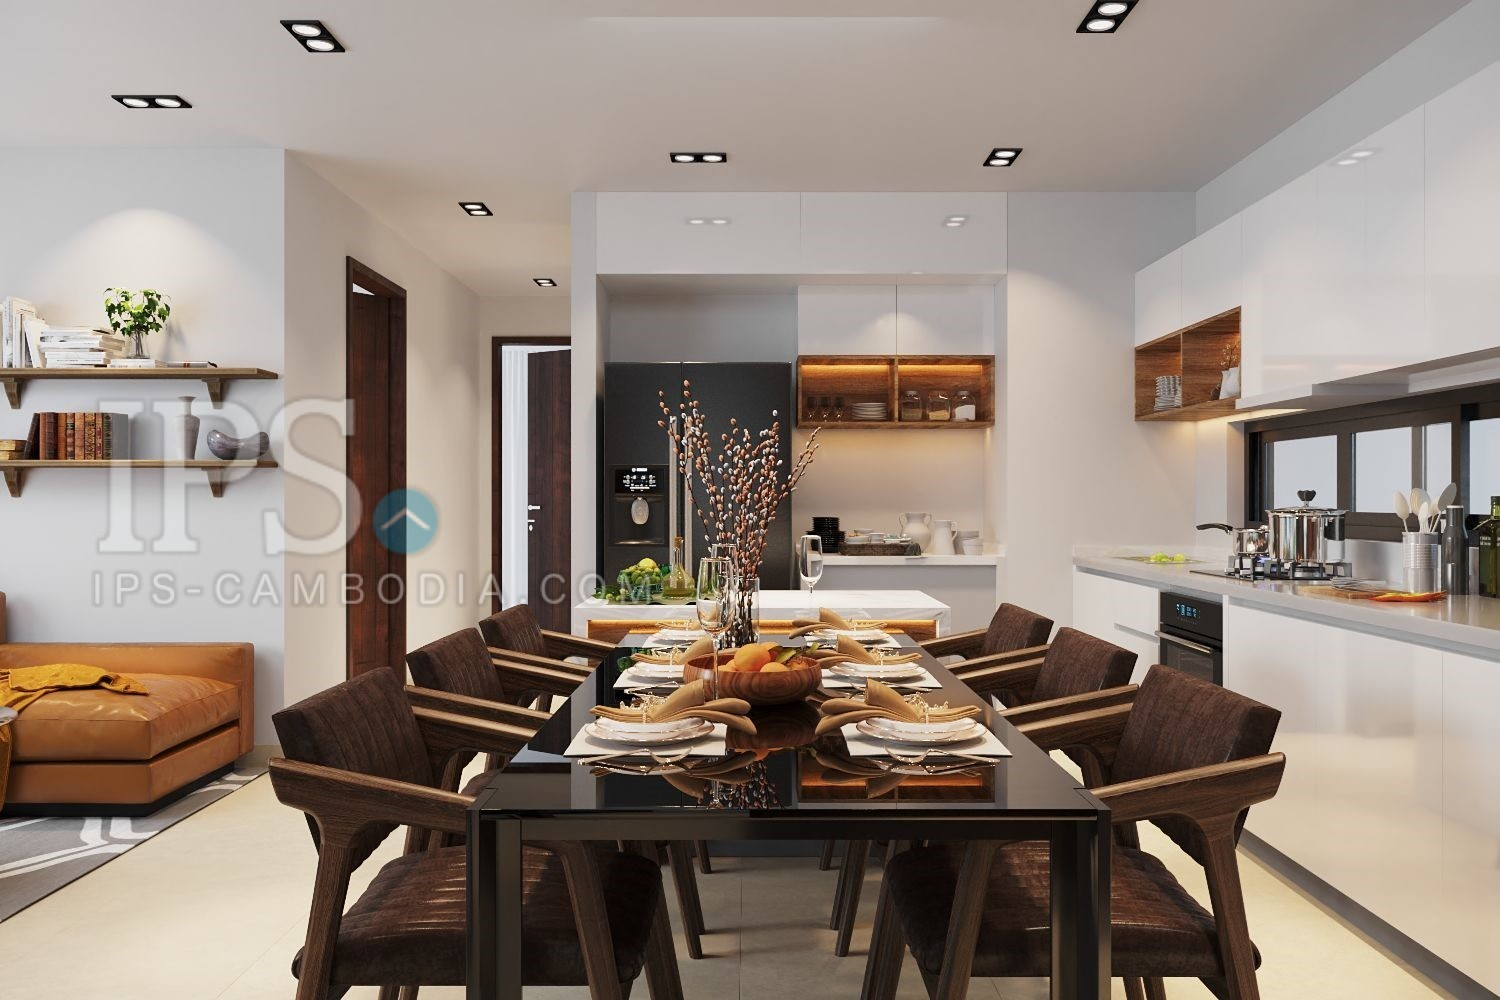 3 Bedroom Condo For Sale Only 1 Unit Left - Downtown Siem Reap